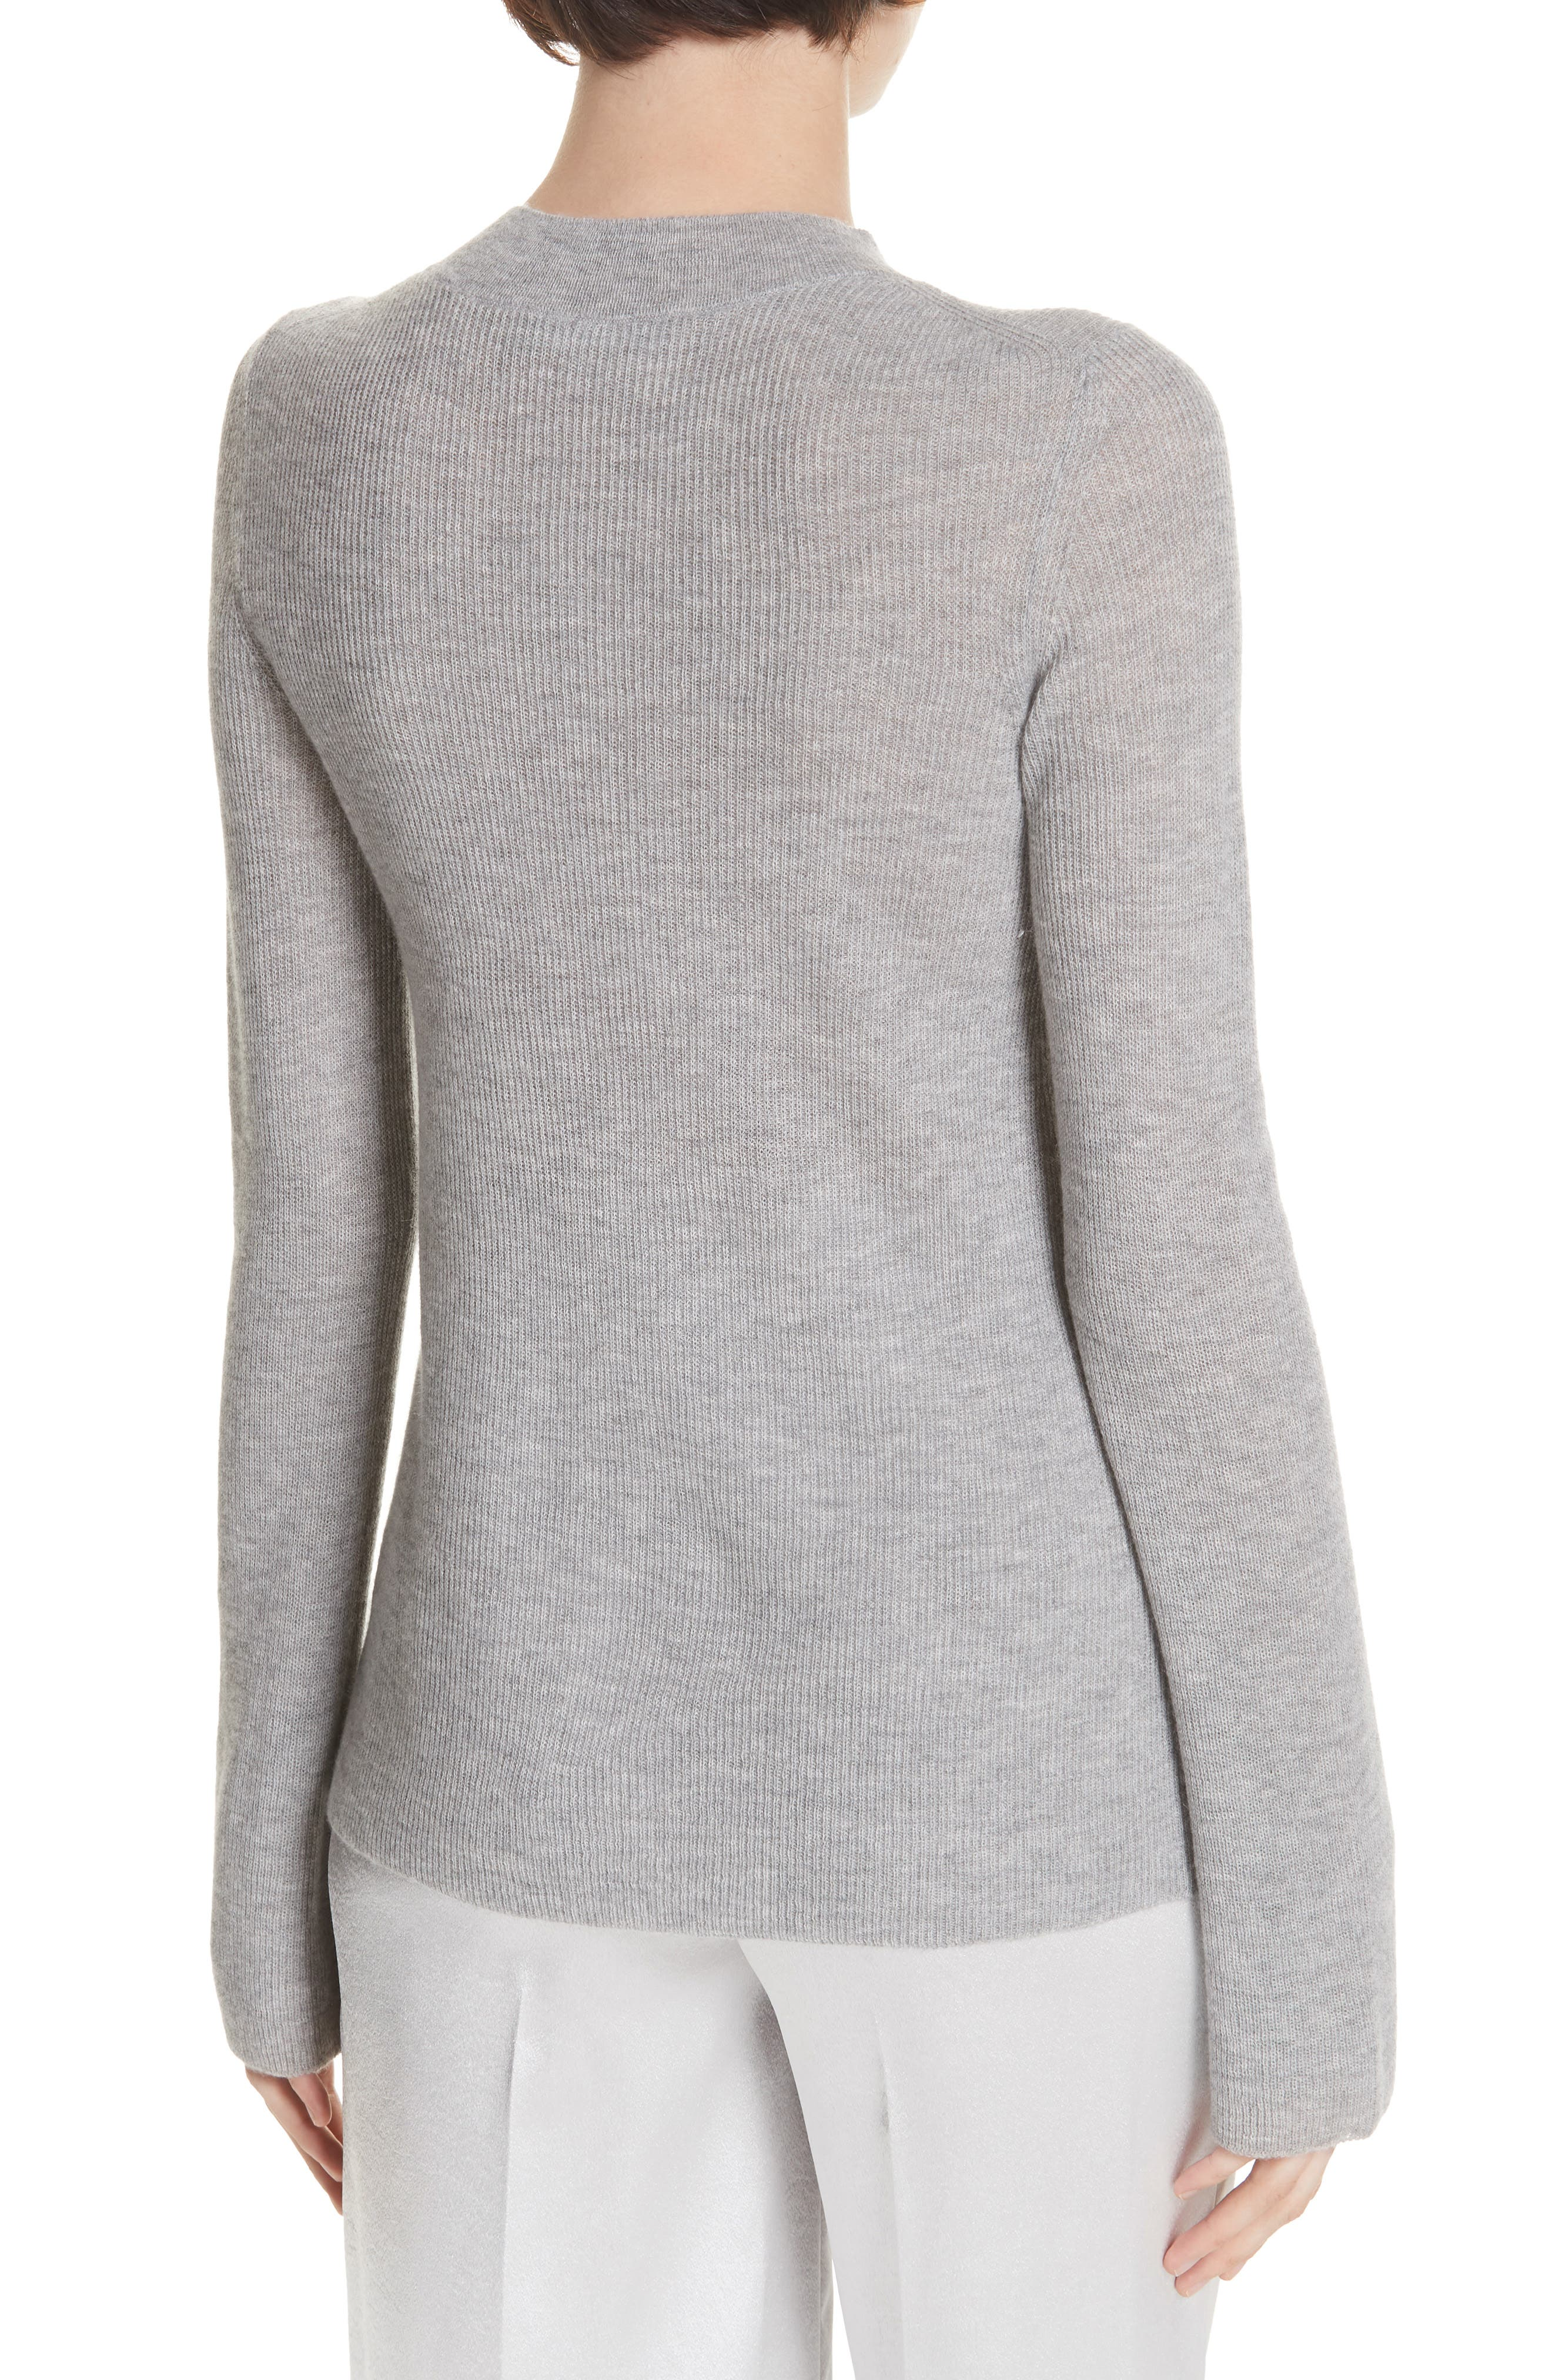 Ribbed Cashmere Sweater,                             Alternate thumbnail 2, color,                             060